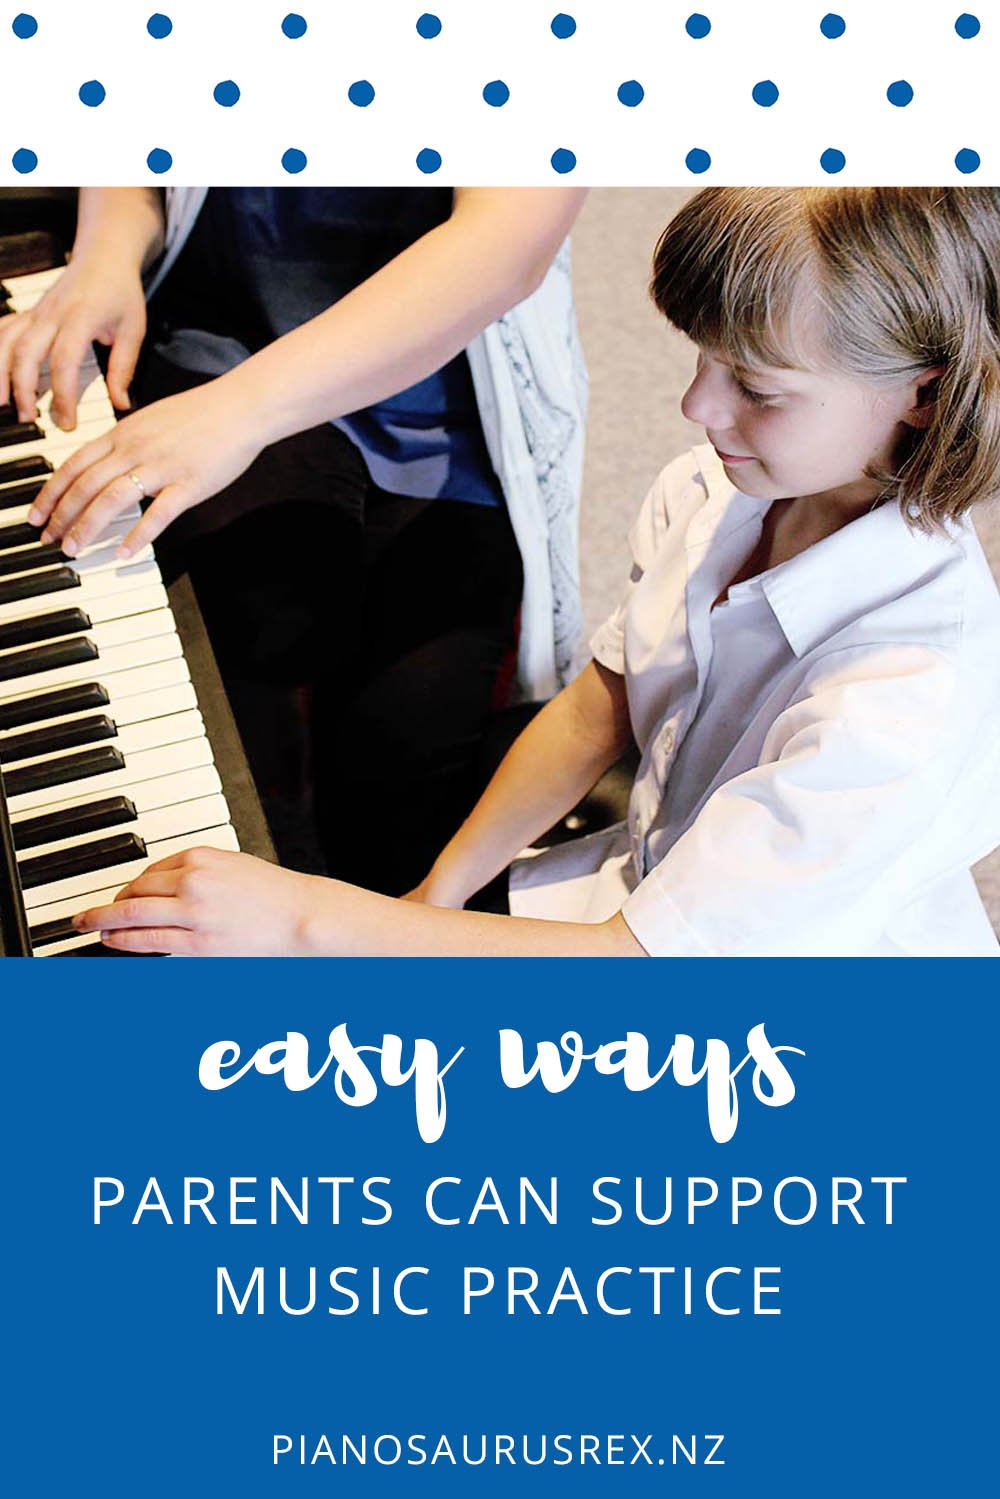 Easy Ways Parents Support Music Practice